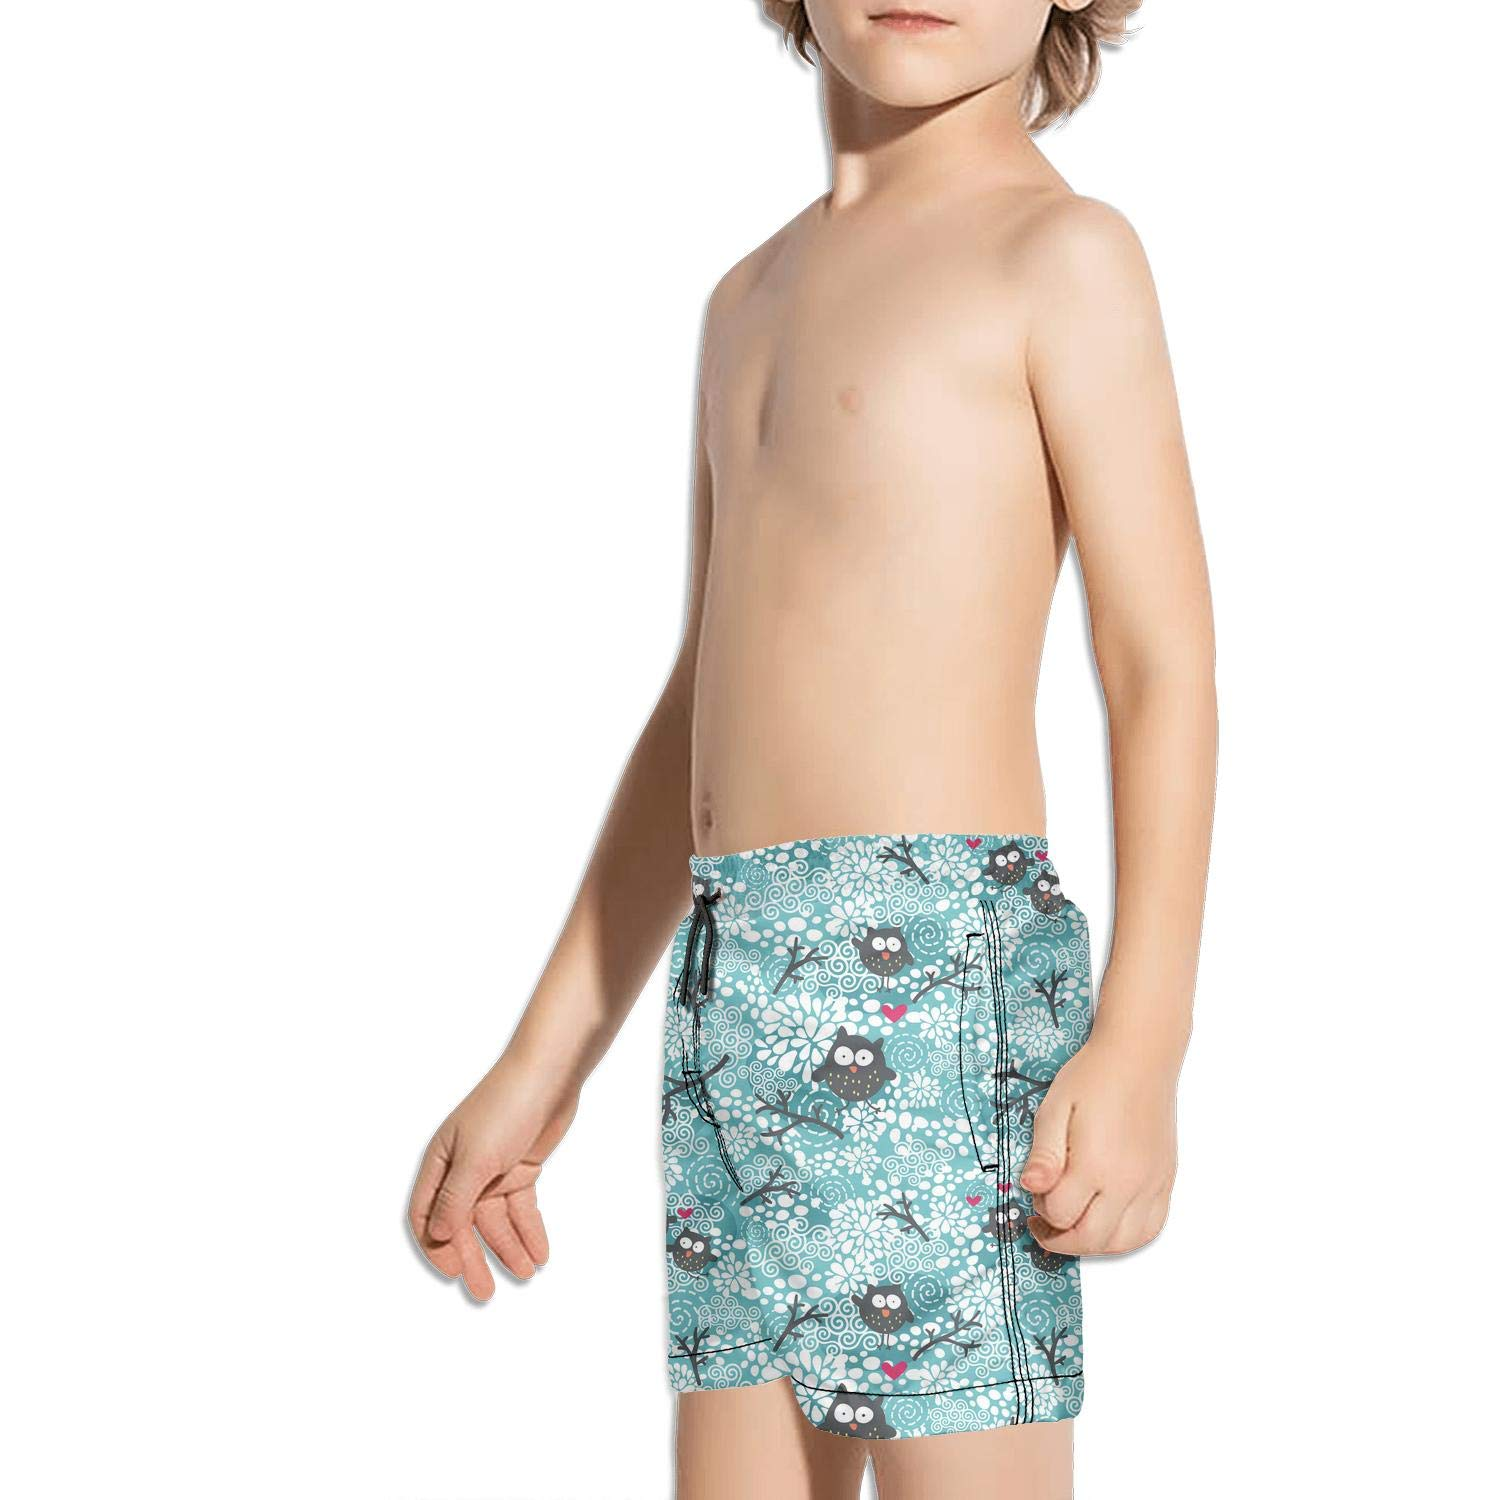 Winter Smart Owls and Snow Boys Kids Swimming Trunks Quick-Dry Water Sport